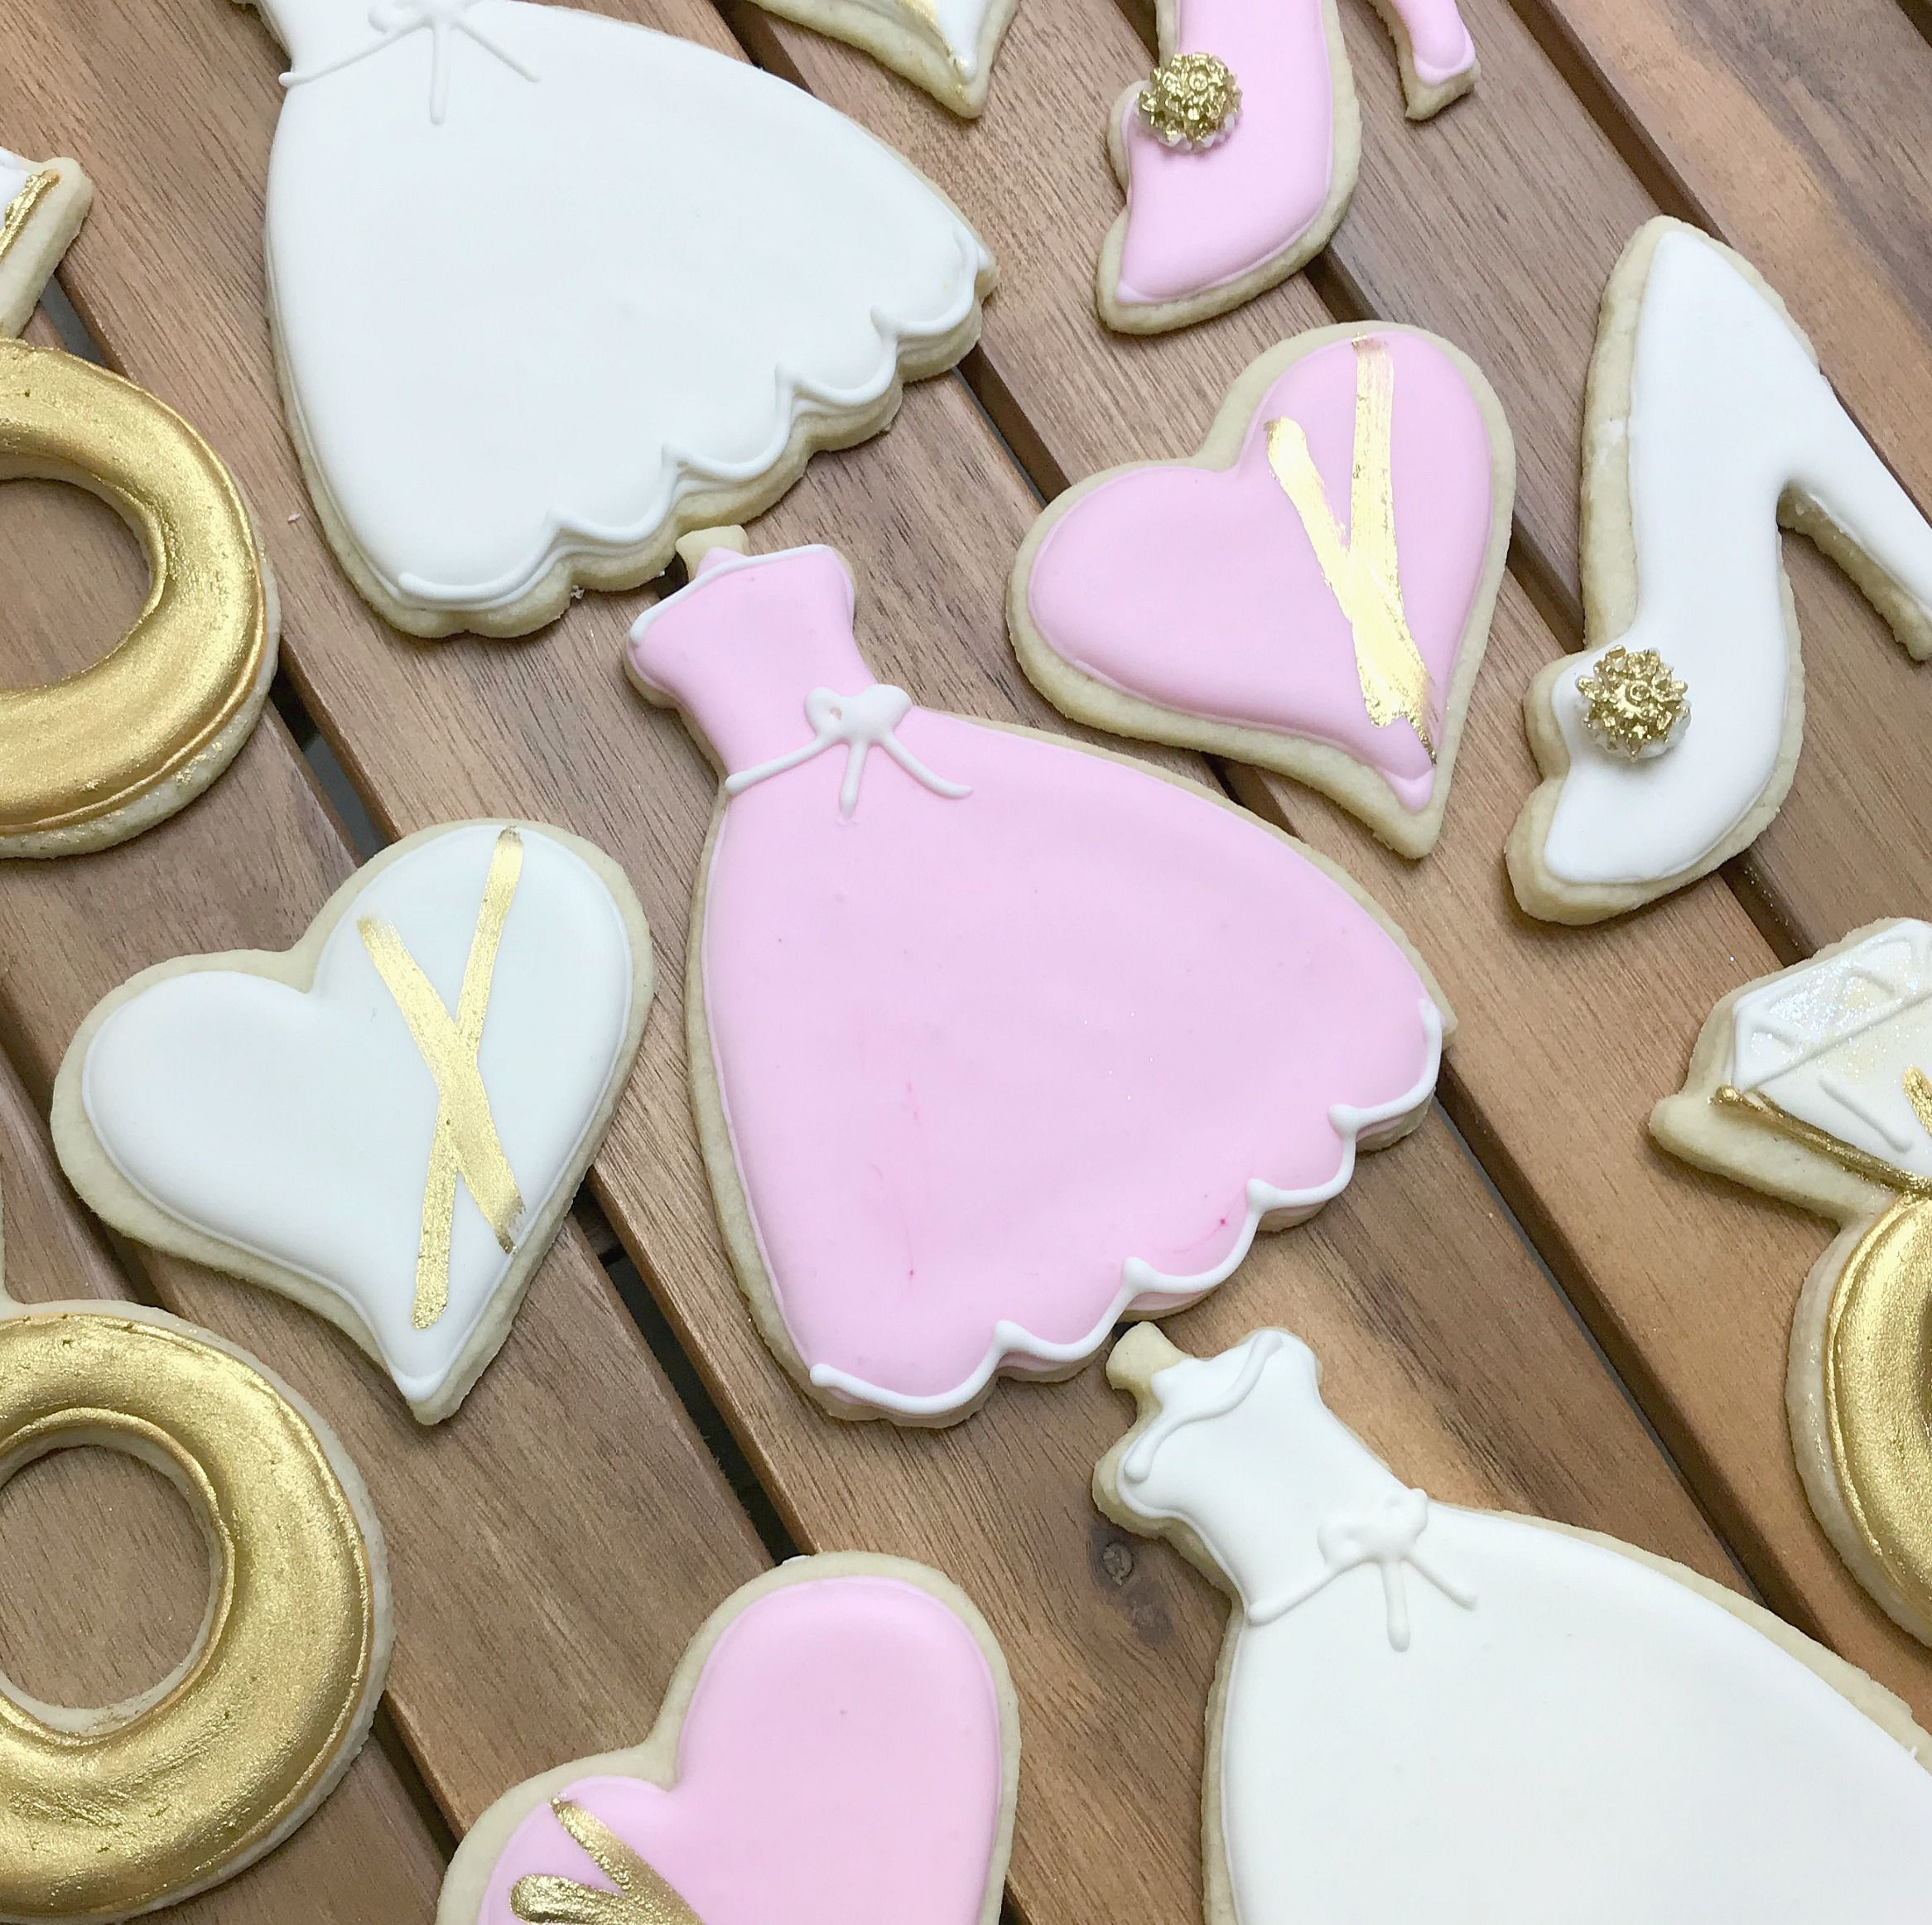 Bridal Shower Favours - Pink & Gold Dresses and Wedding Rings | My ...